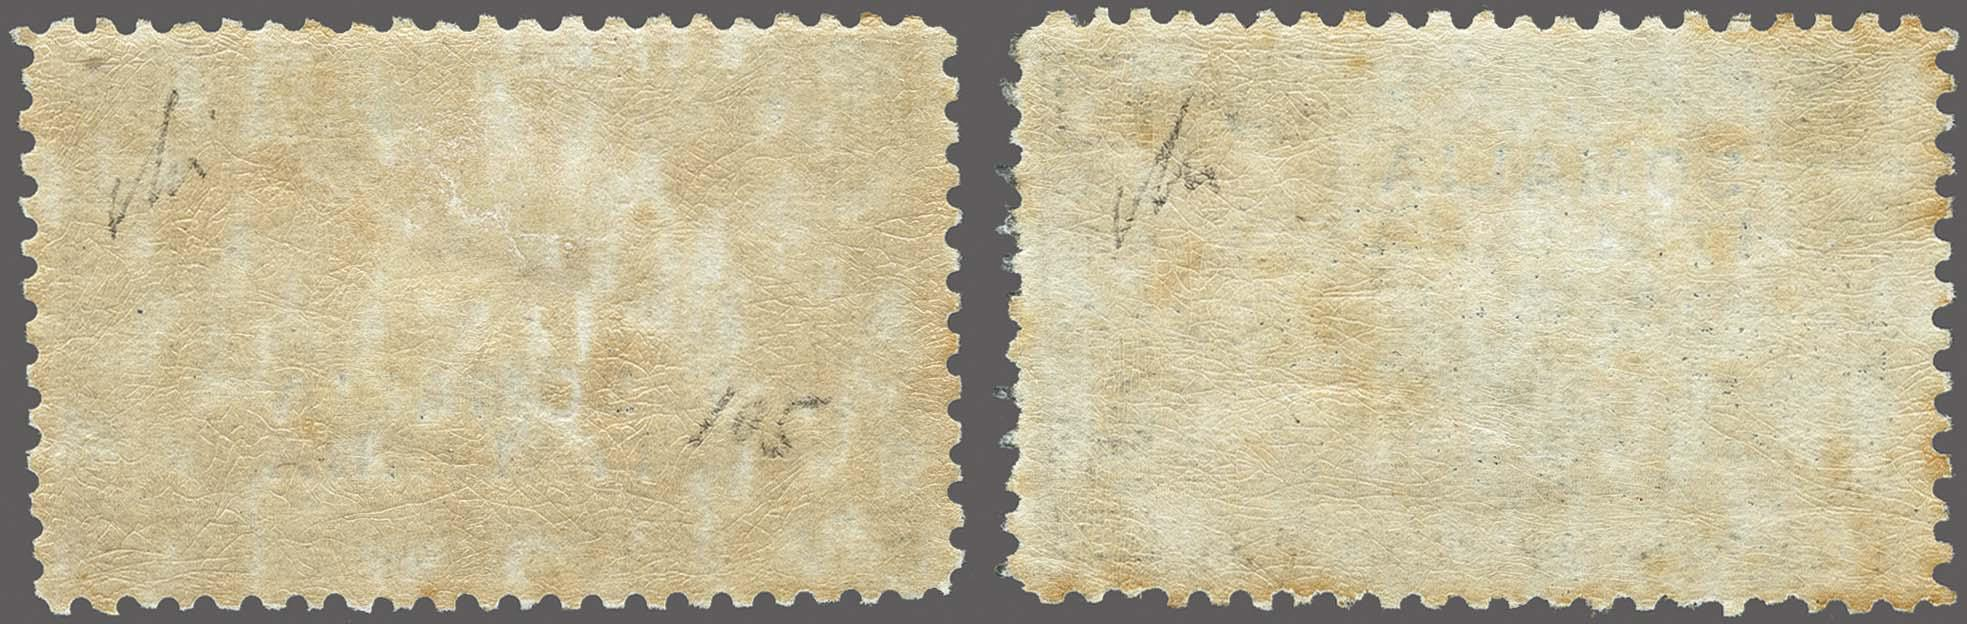 Lot 215 - Italy and former colonies italian somaliland -  Corinphila Veilingen Auction 250-253 - Day 1 - Foreign countries